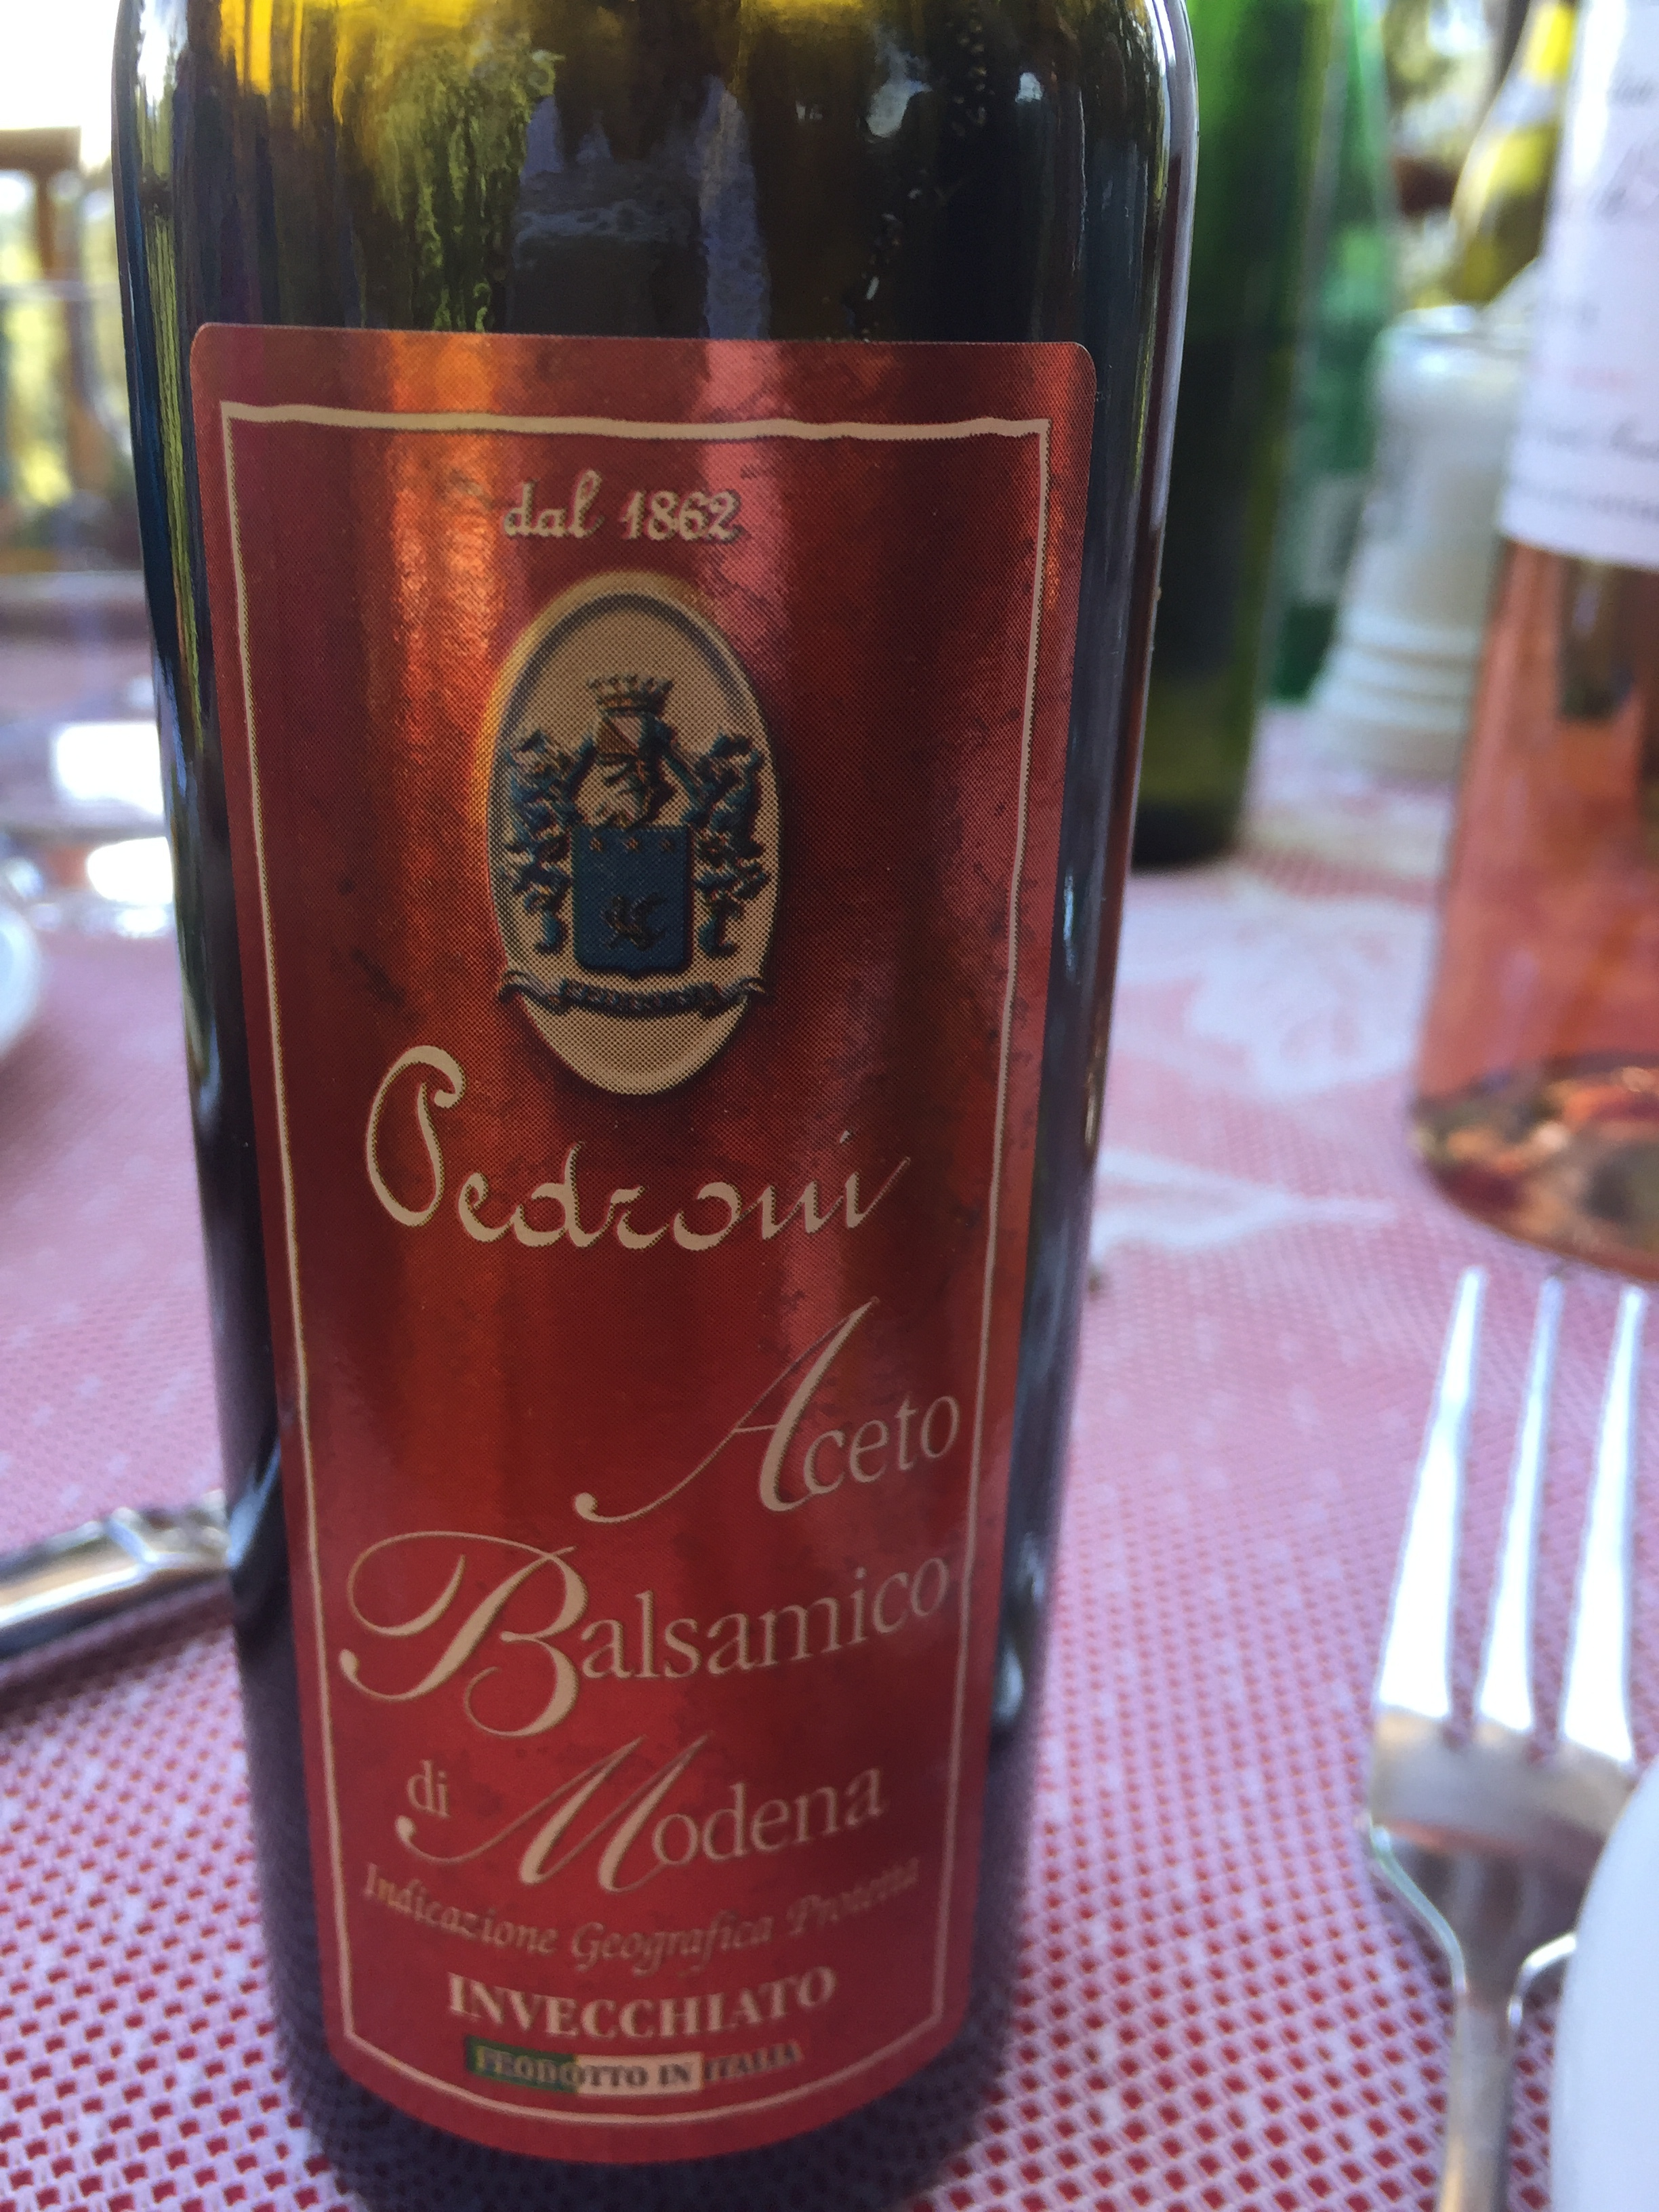 This is not fake balsamic. It's the real deal and worth the money.